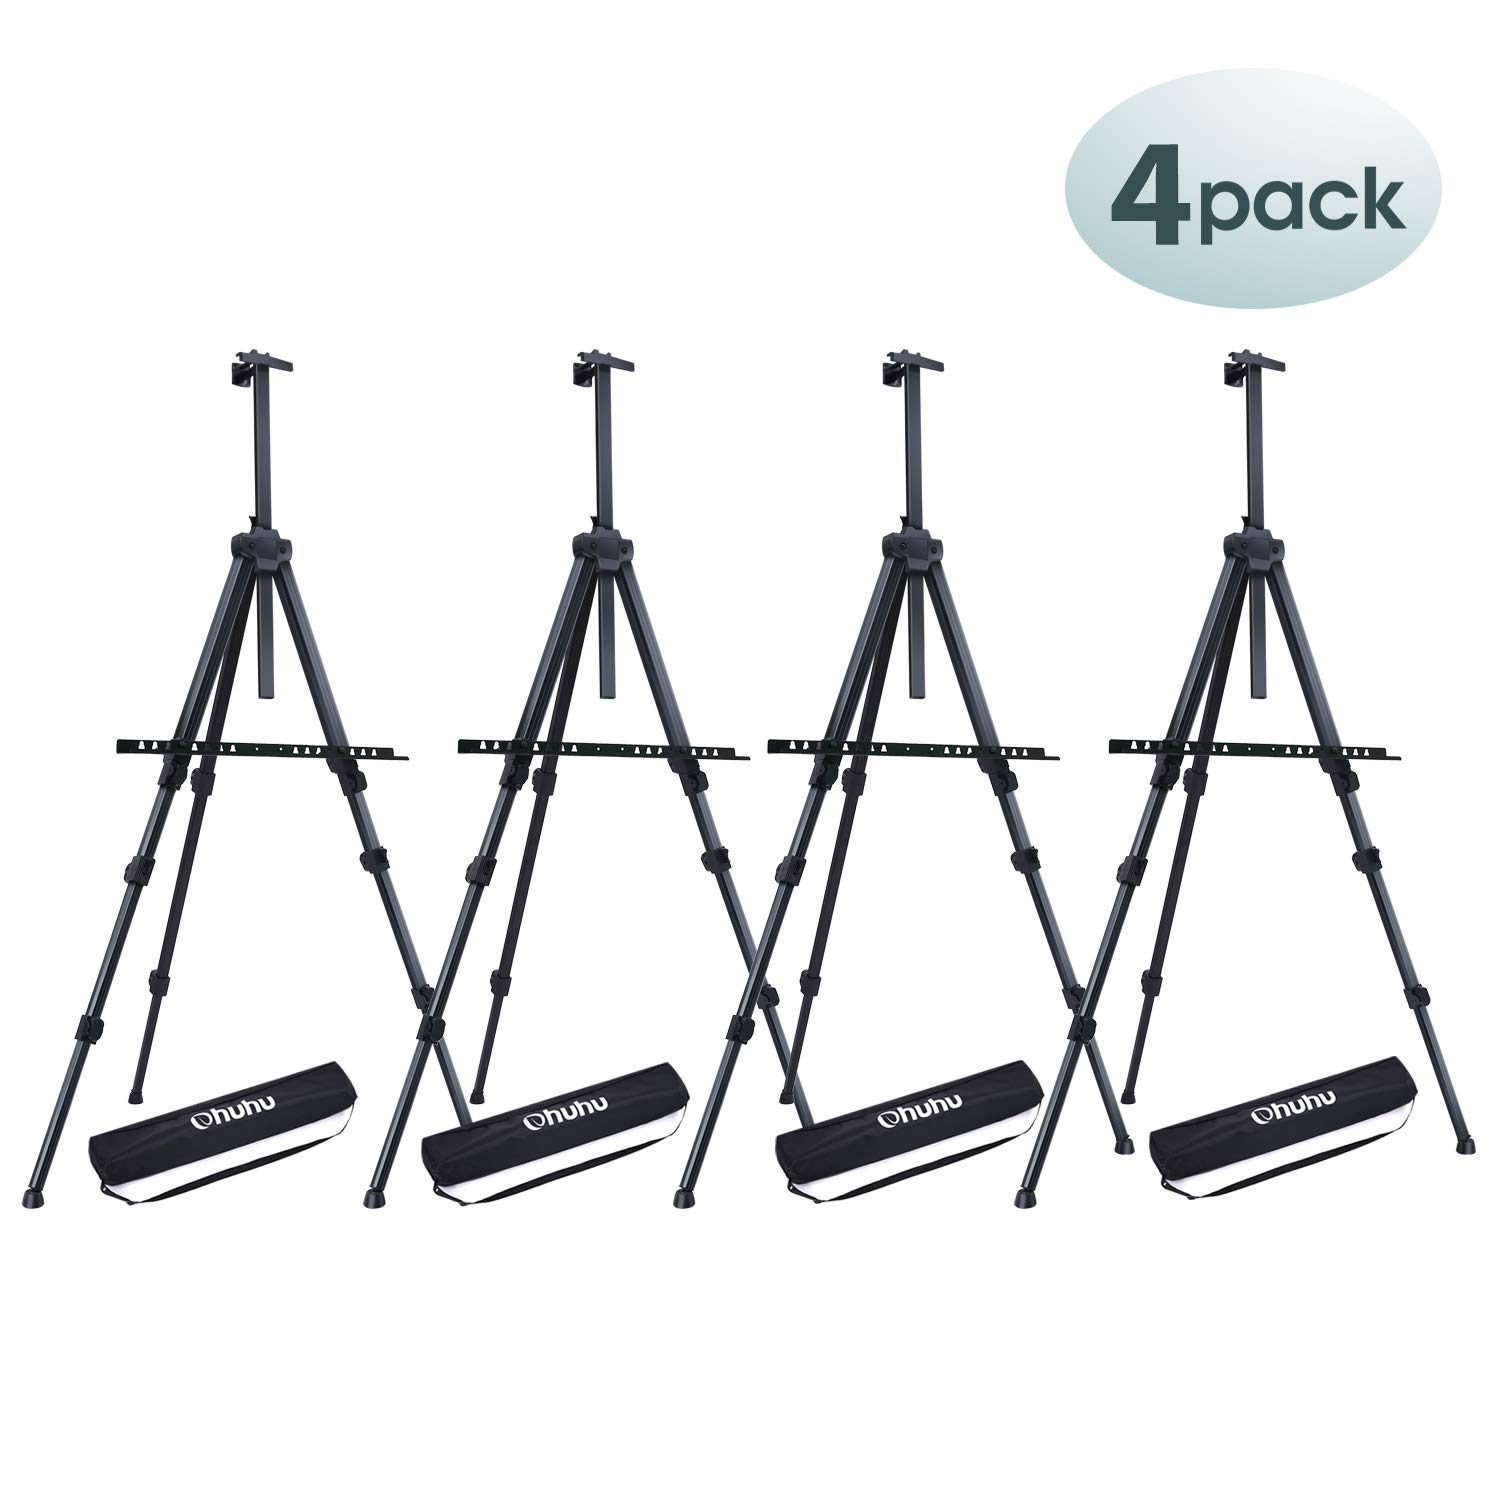 """4 Pack Easel Stand, Ohuhu 72'' Artist Easels for Display, Aluminum Metal Tripod Field Easel with Bag for Table-Top/Floor/Flip Charts, Black Art Easels W/Adjustable Height 25-72"""""""